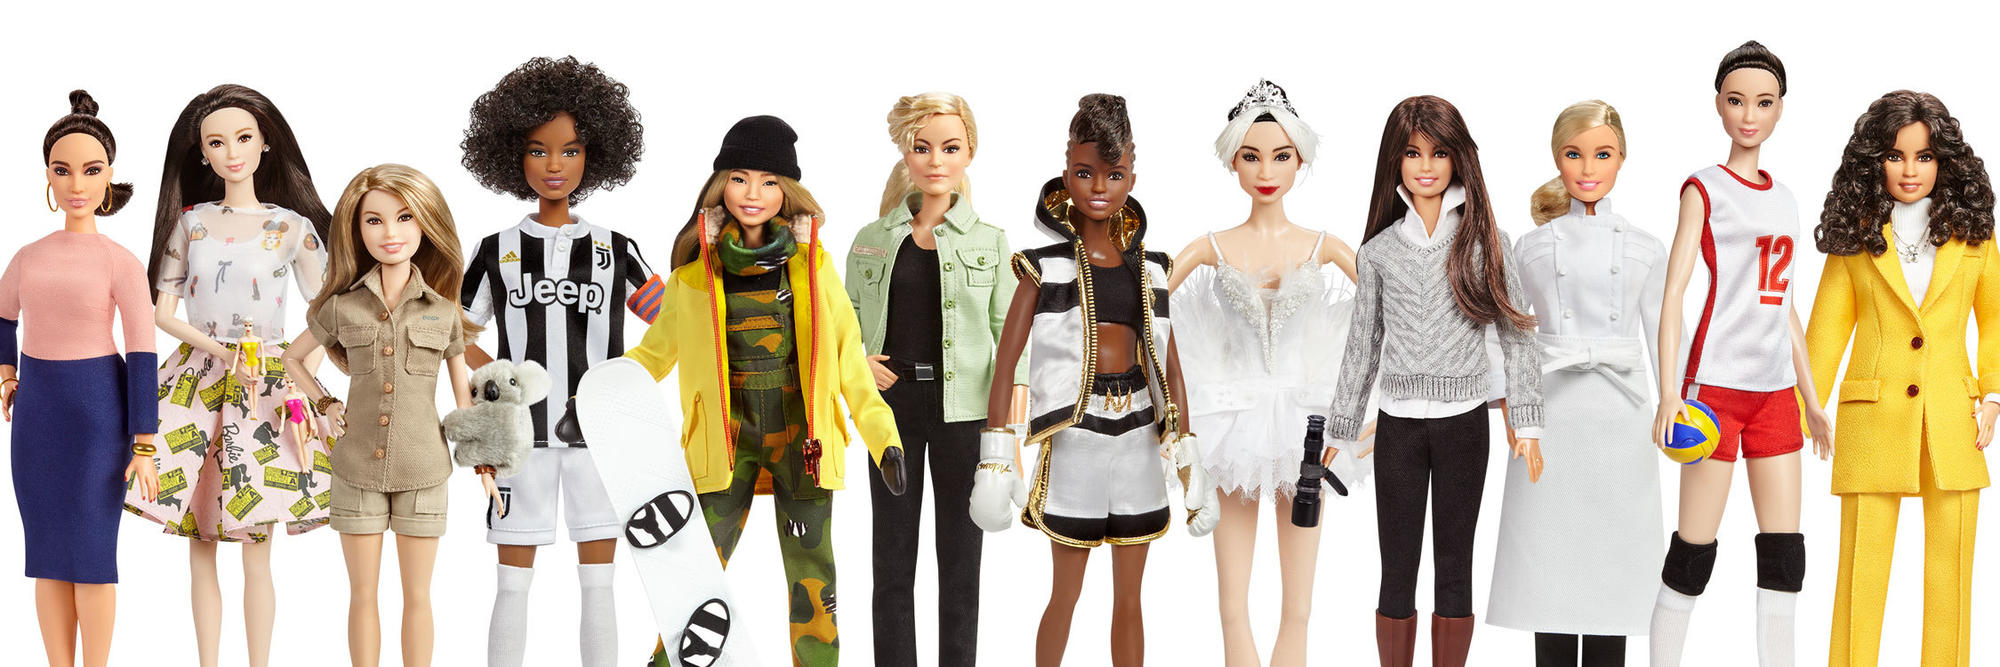 Barbie Creates a 'Sheros' Doll Line Focusing on Inspirational Women